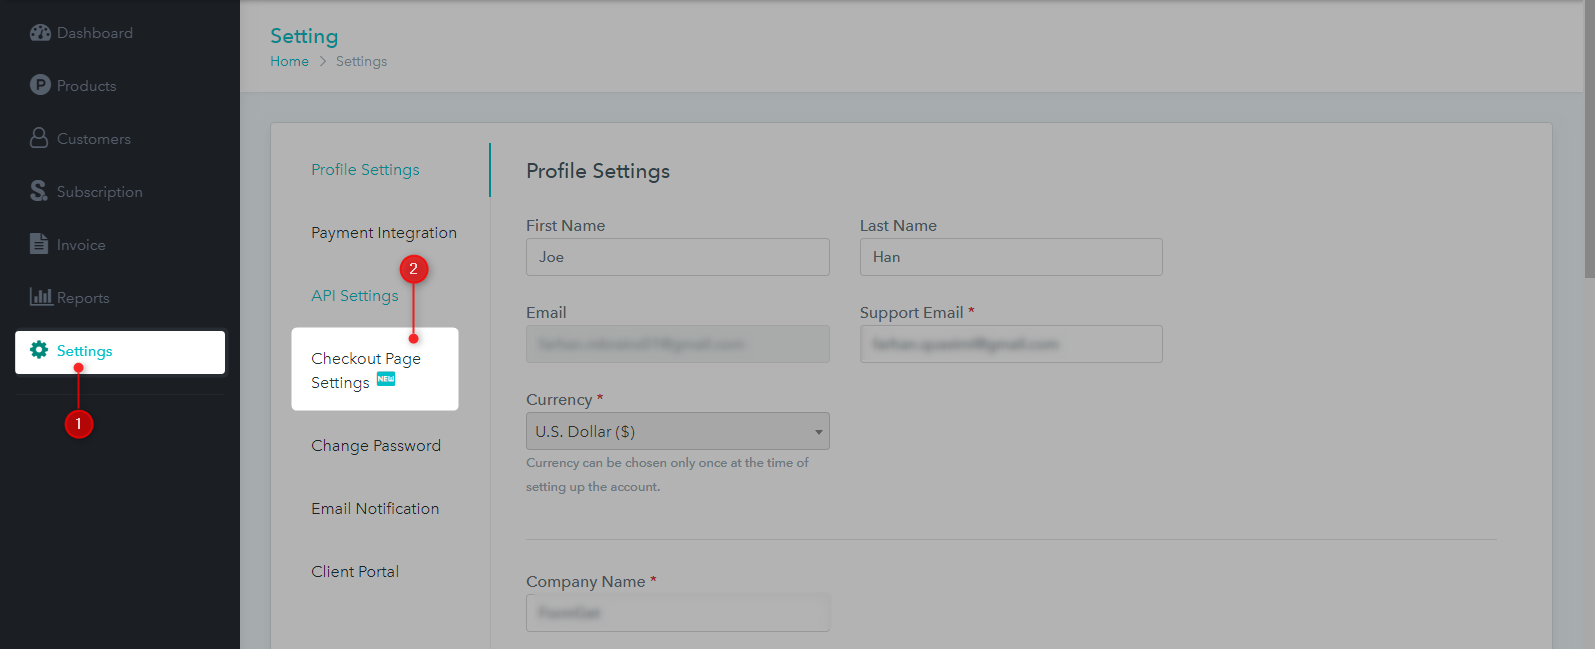 Settings - Checkout Page Settings